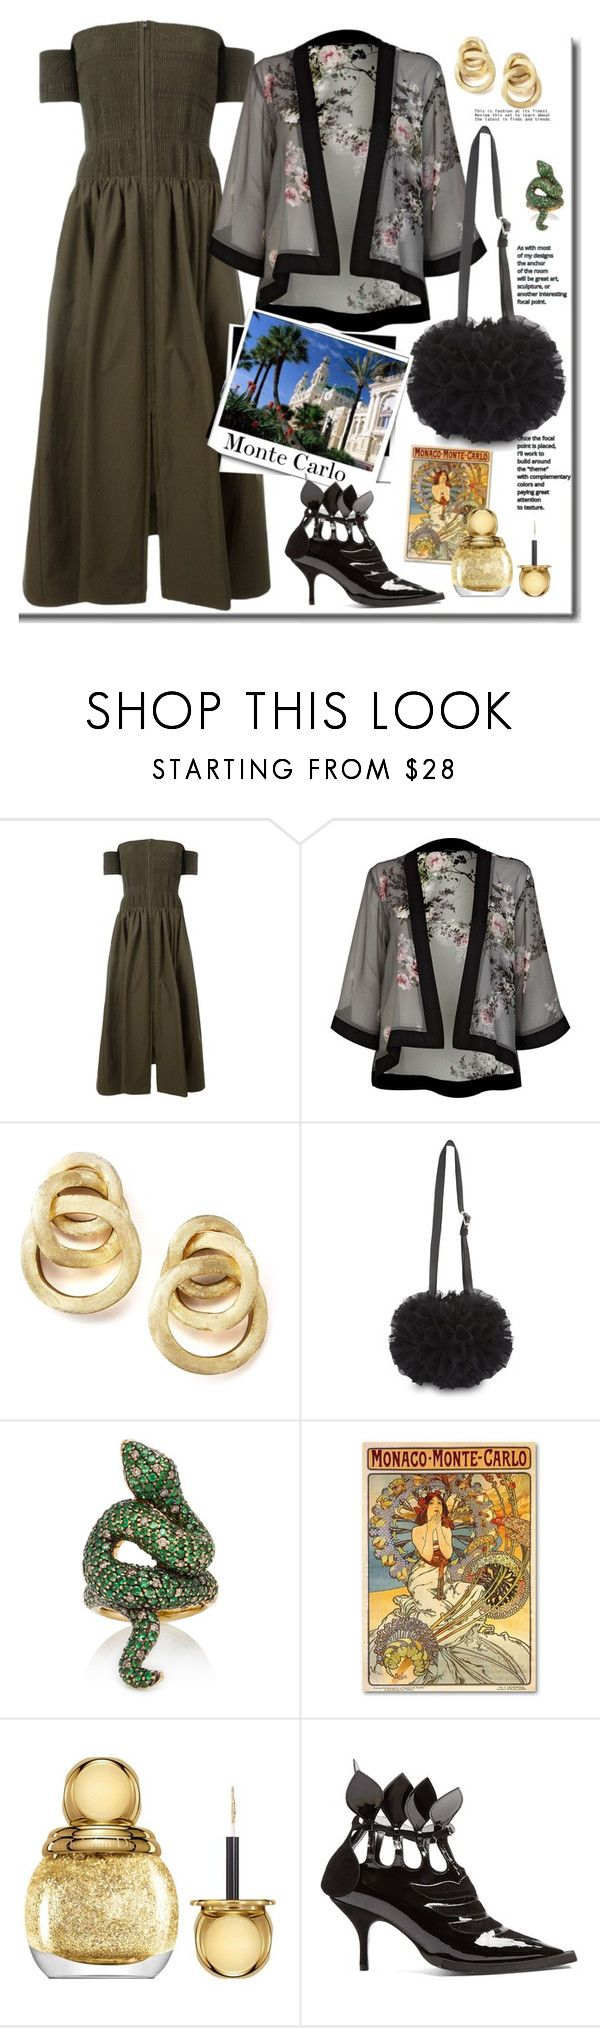 """""""Monte Carlo Travel Outfits"""" by faten-m-h ❤ liked on Polyvore featuring Fendi, River Island, Marco Bicego, Comme des Garçons, Timeless, Christian Dior, Blue Roses and montecarlo"""